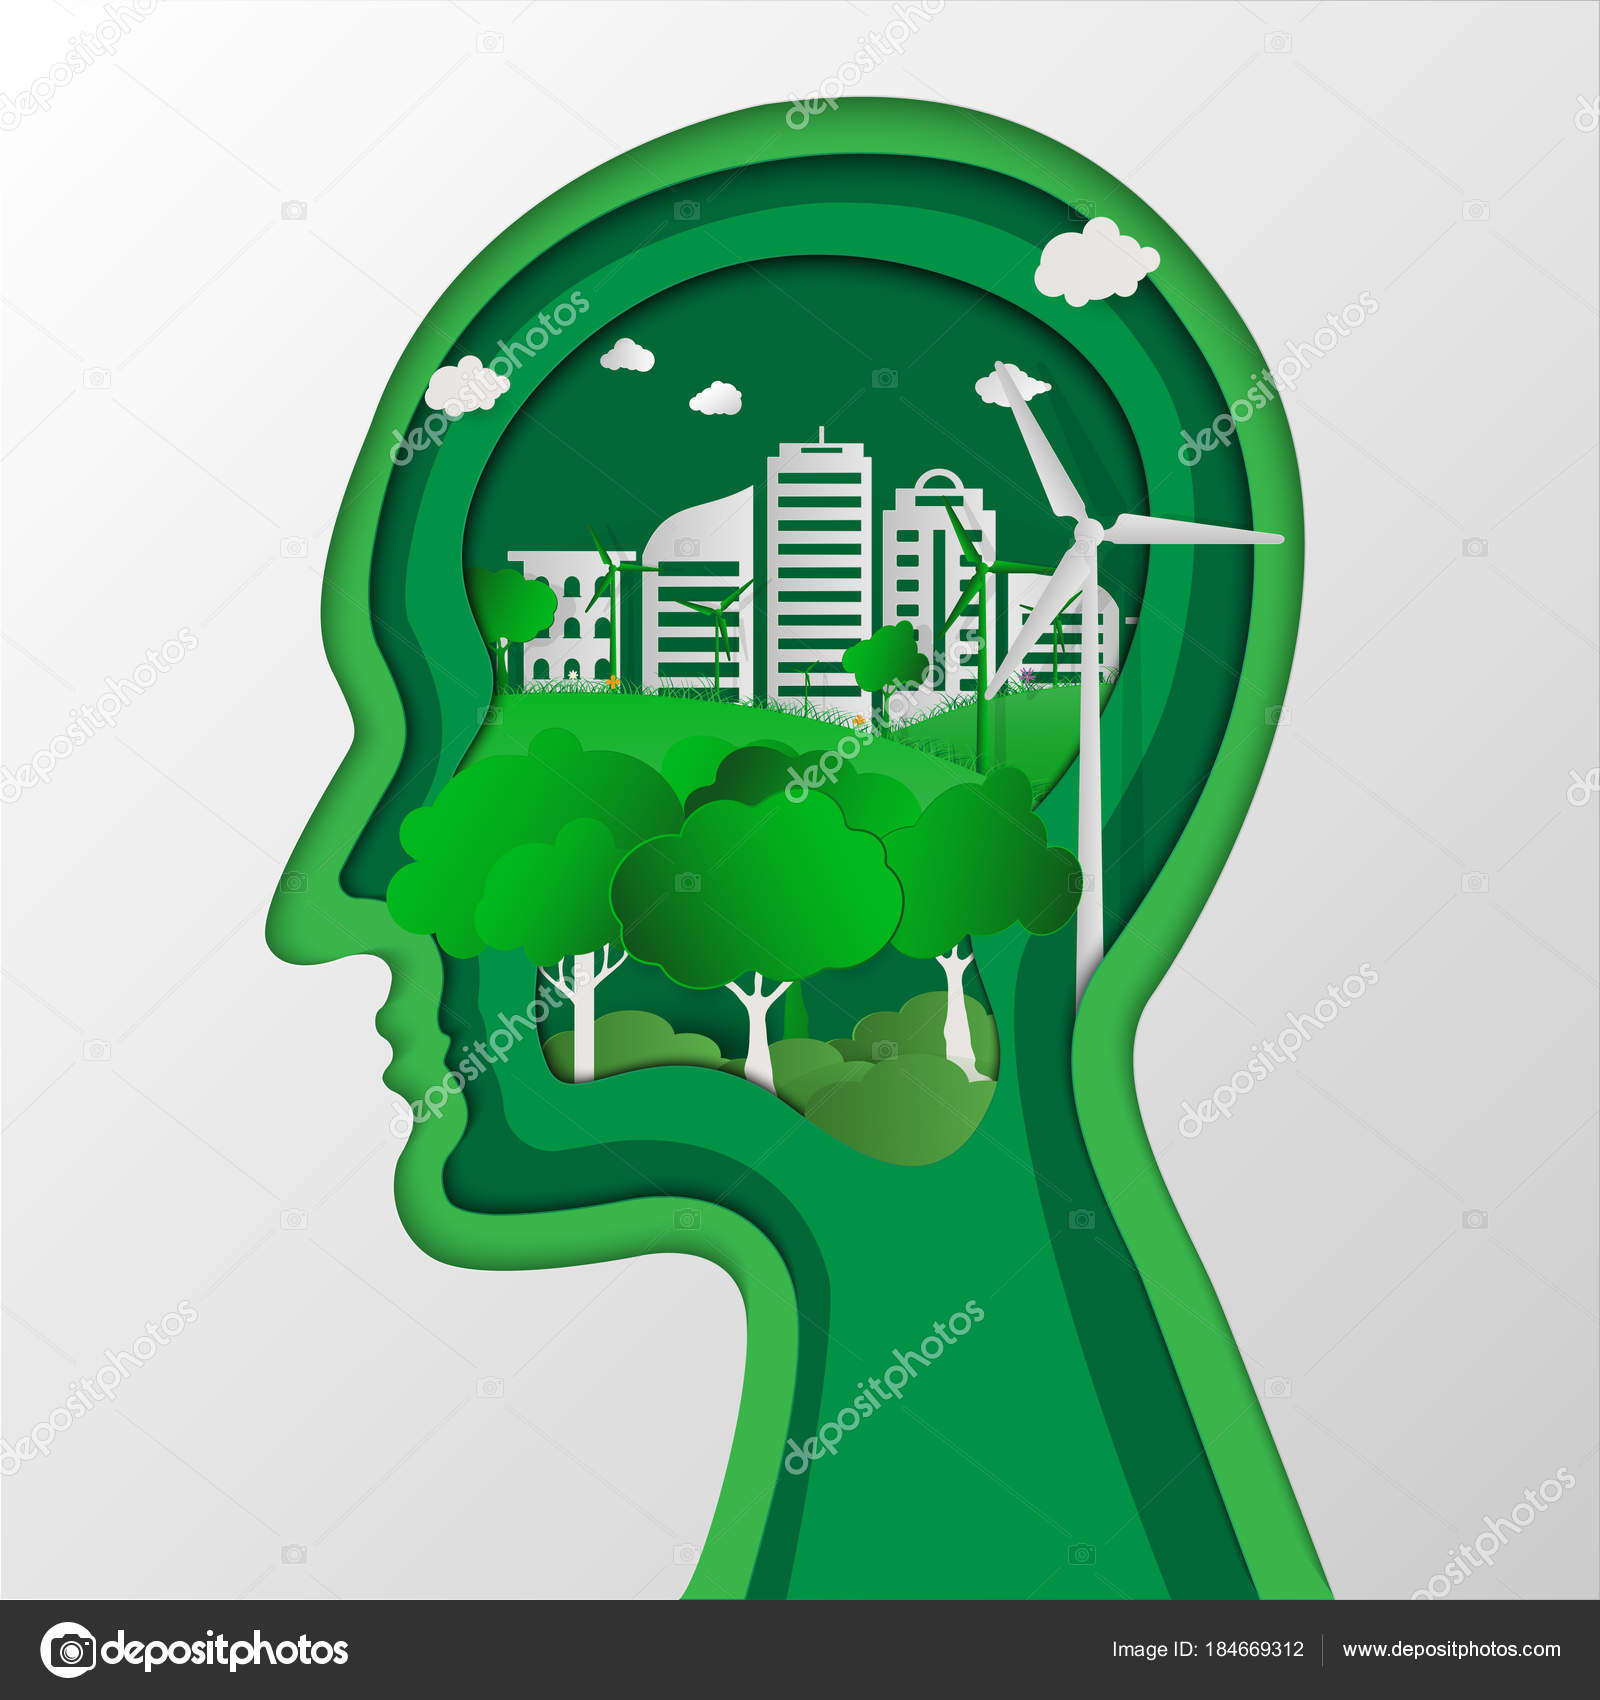 Environmental Concept Earthfriendly Landscapes: Human Head Thinking Environment Conservation Nature